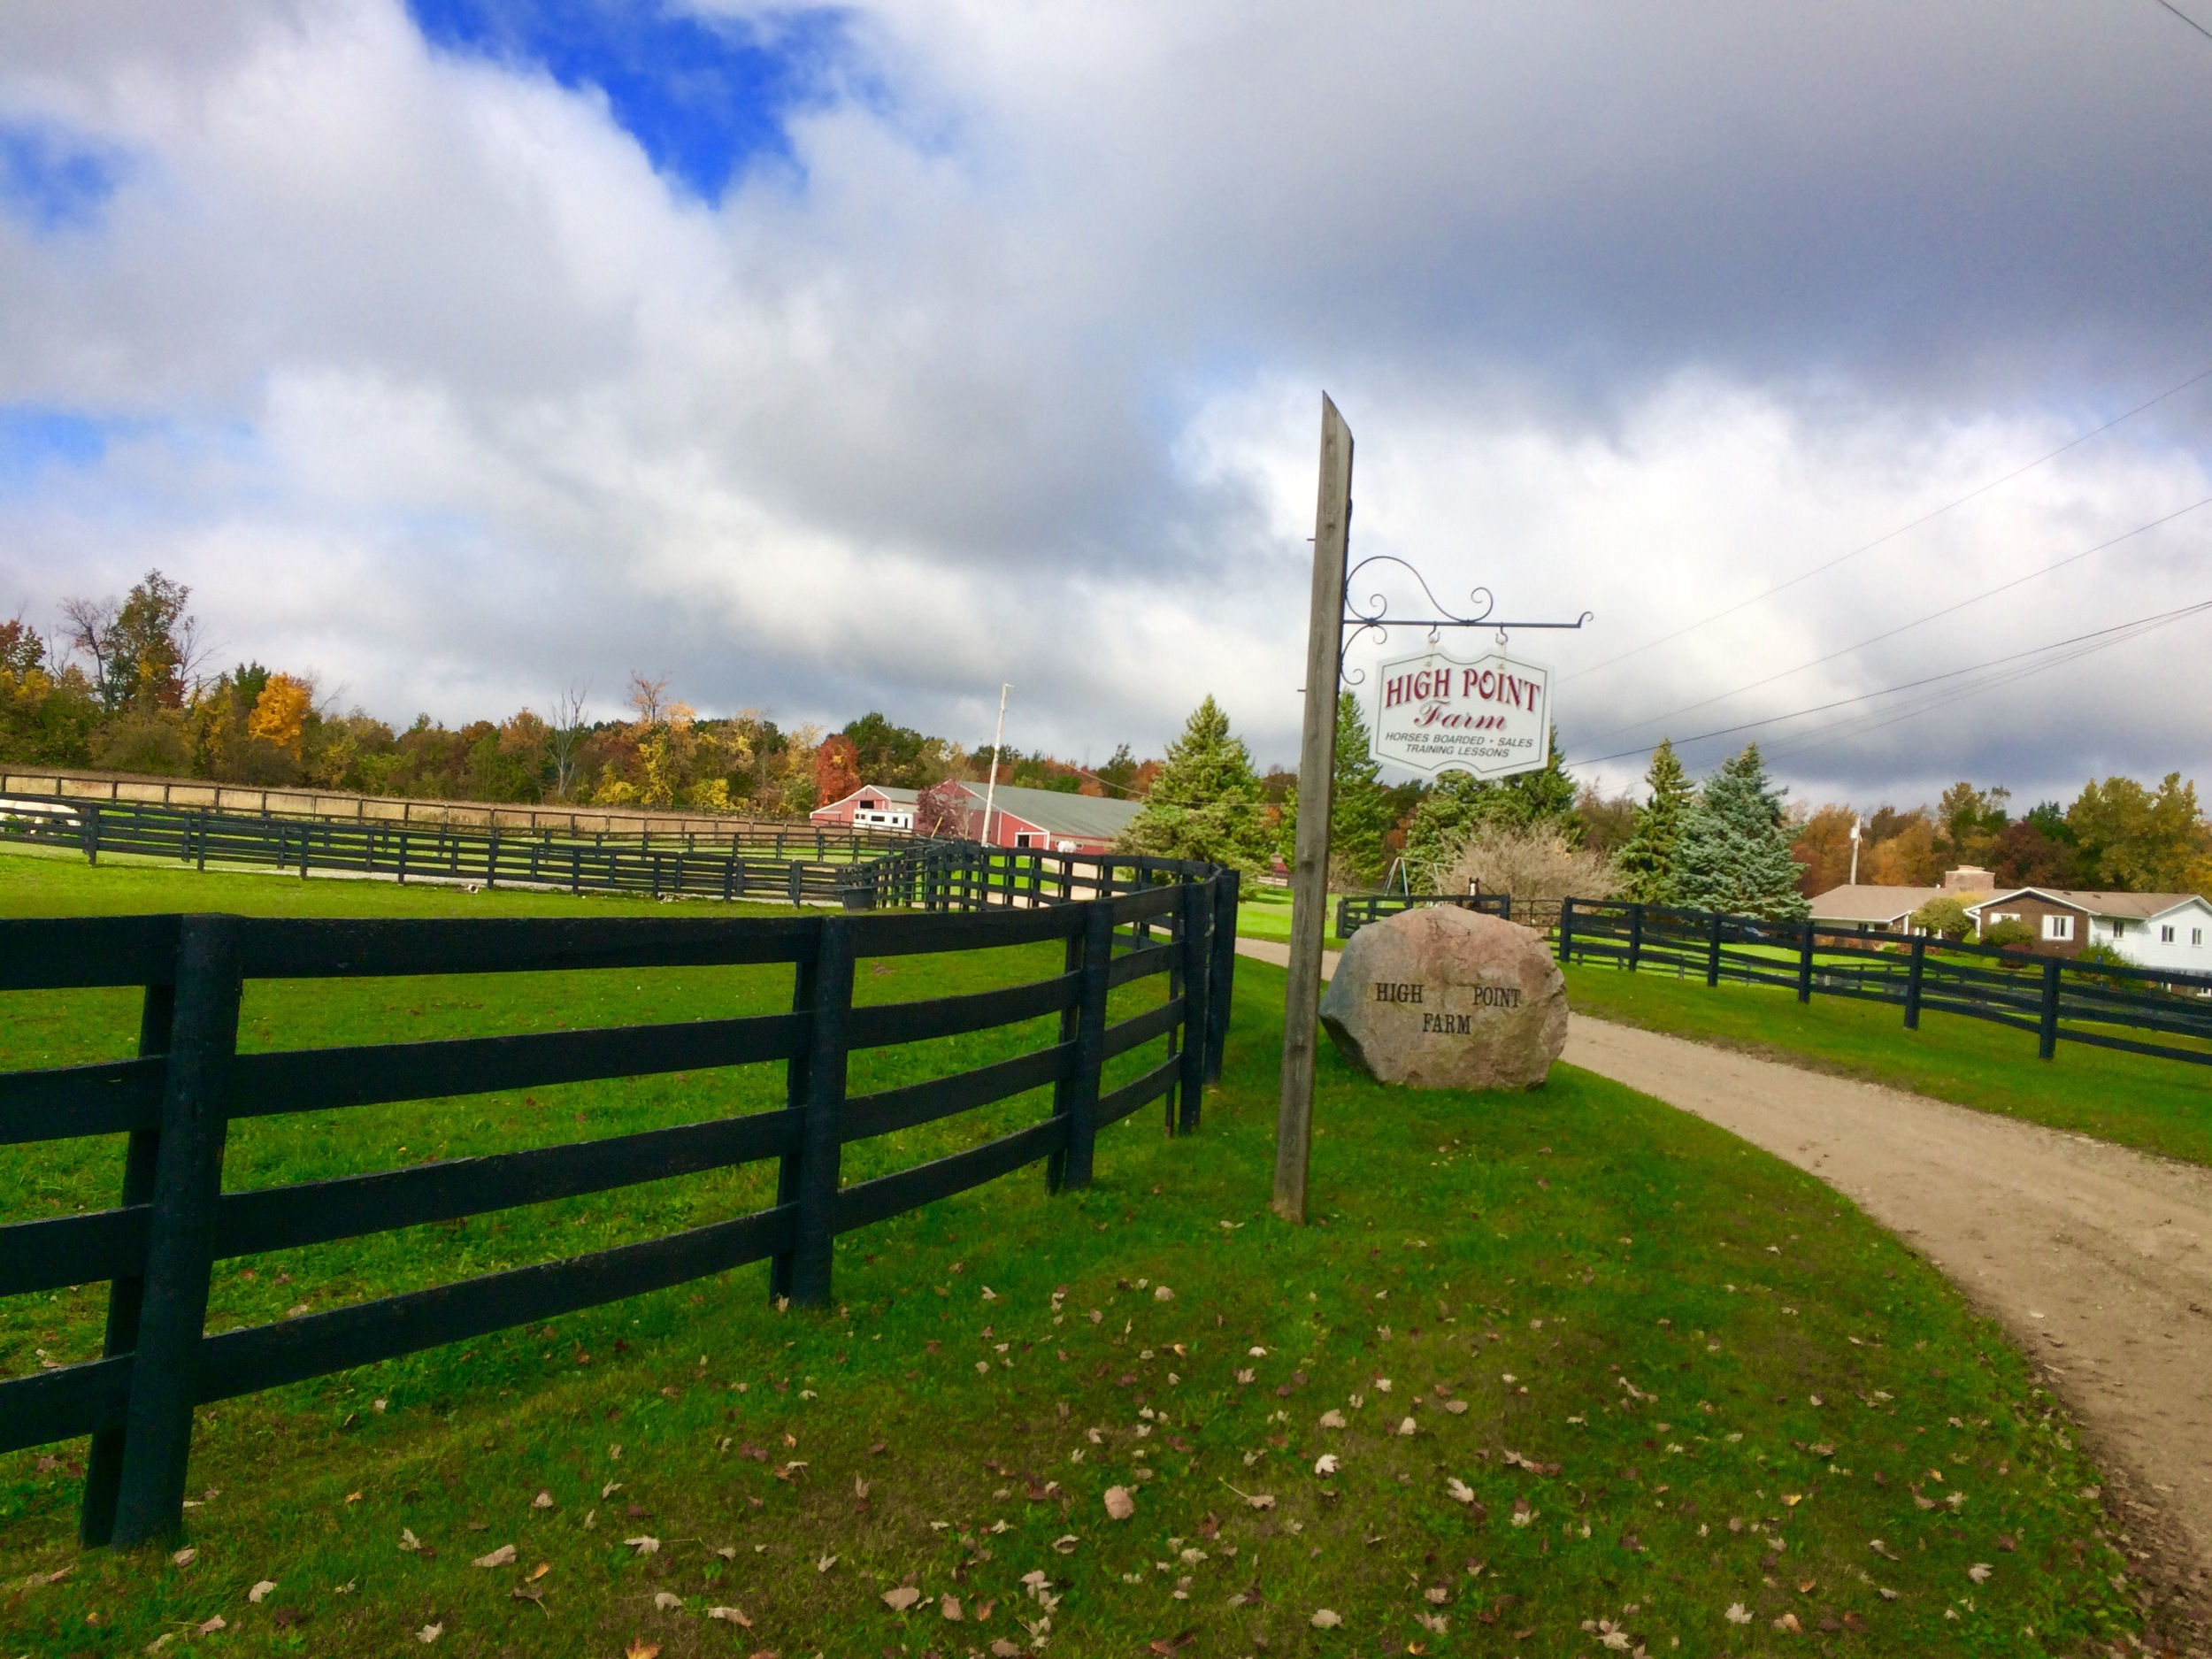 High Point Farm